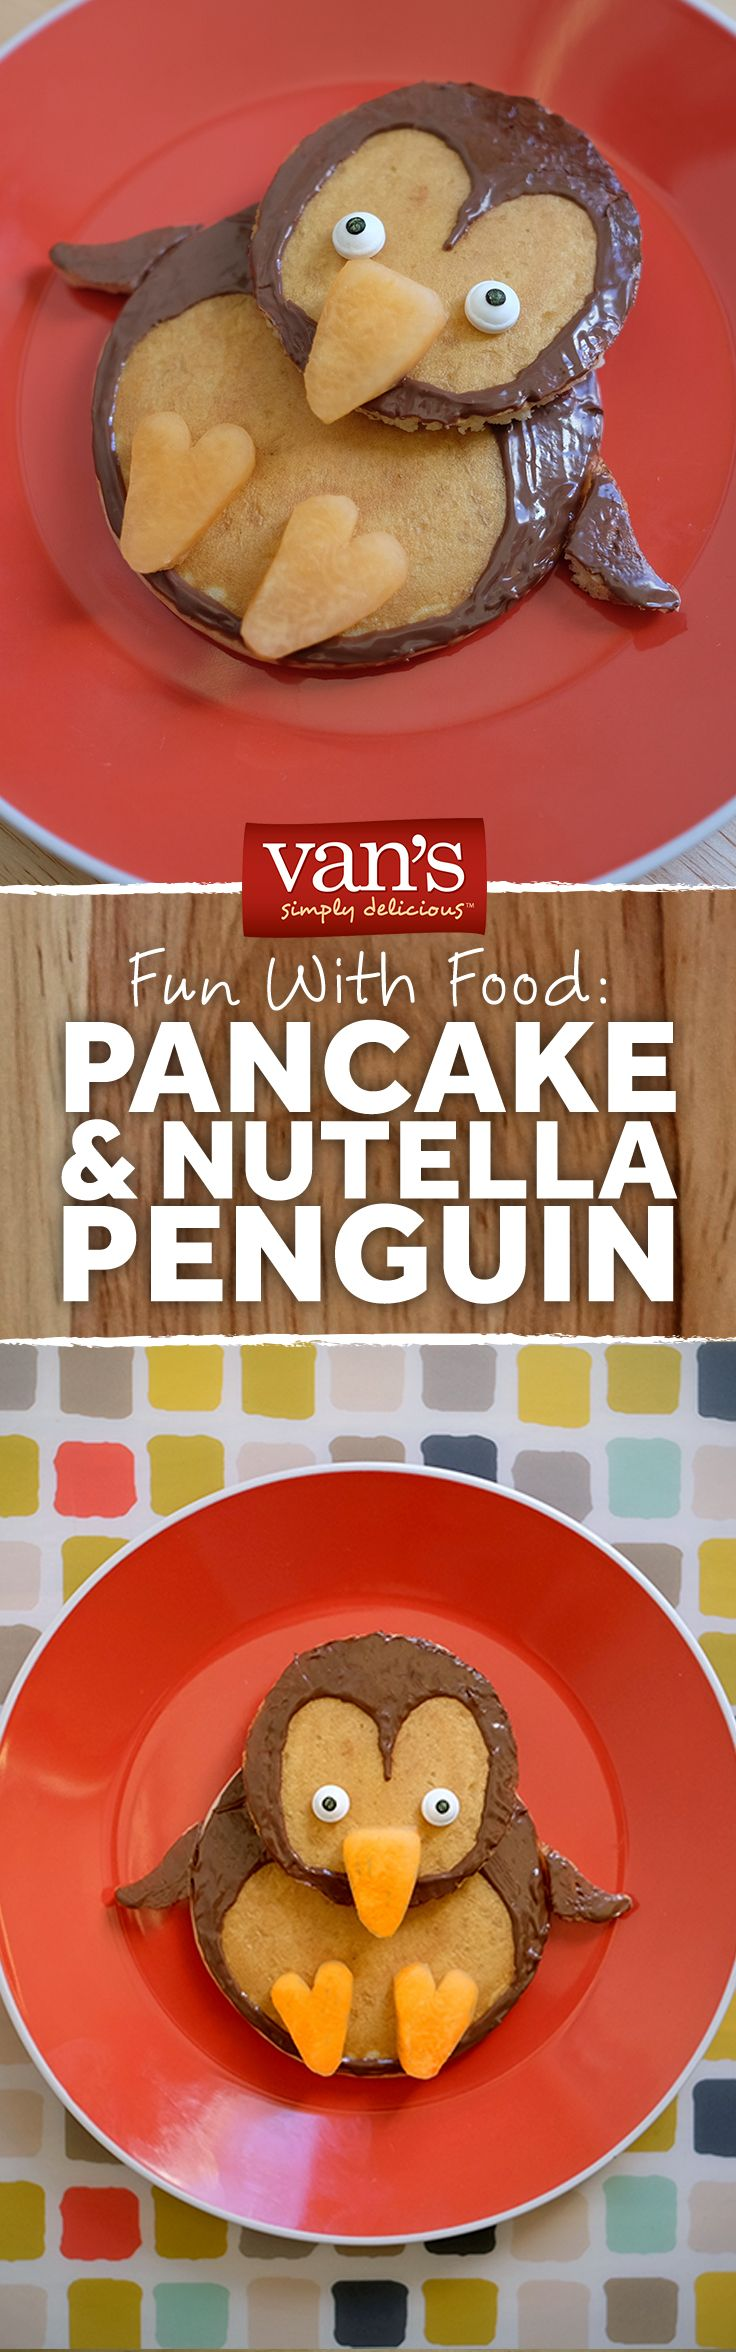 Fun breakfasts are the best breakfasts! Dish up a pancake penguin with some creative use of Nutella!